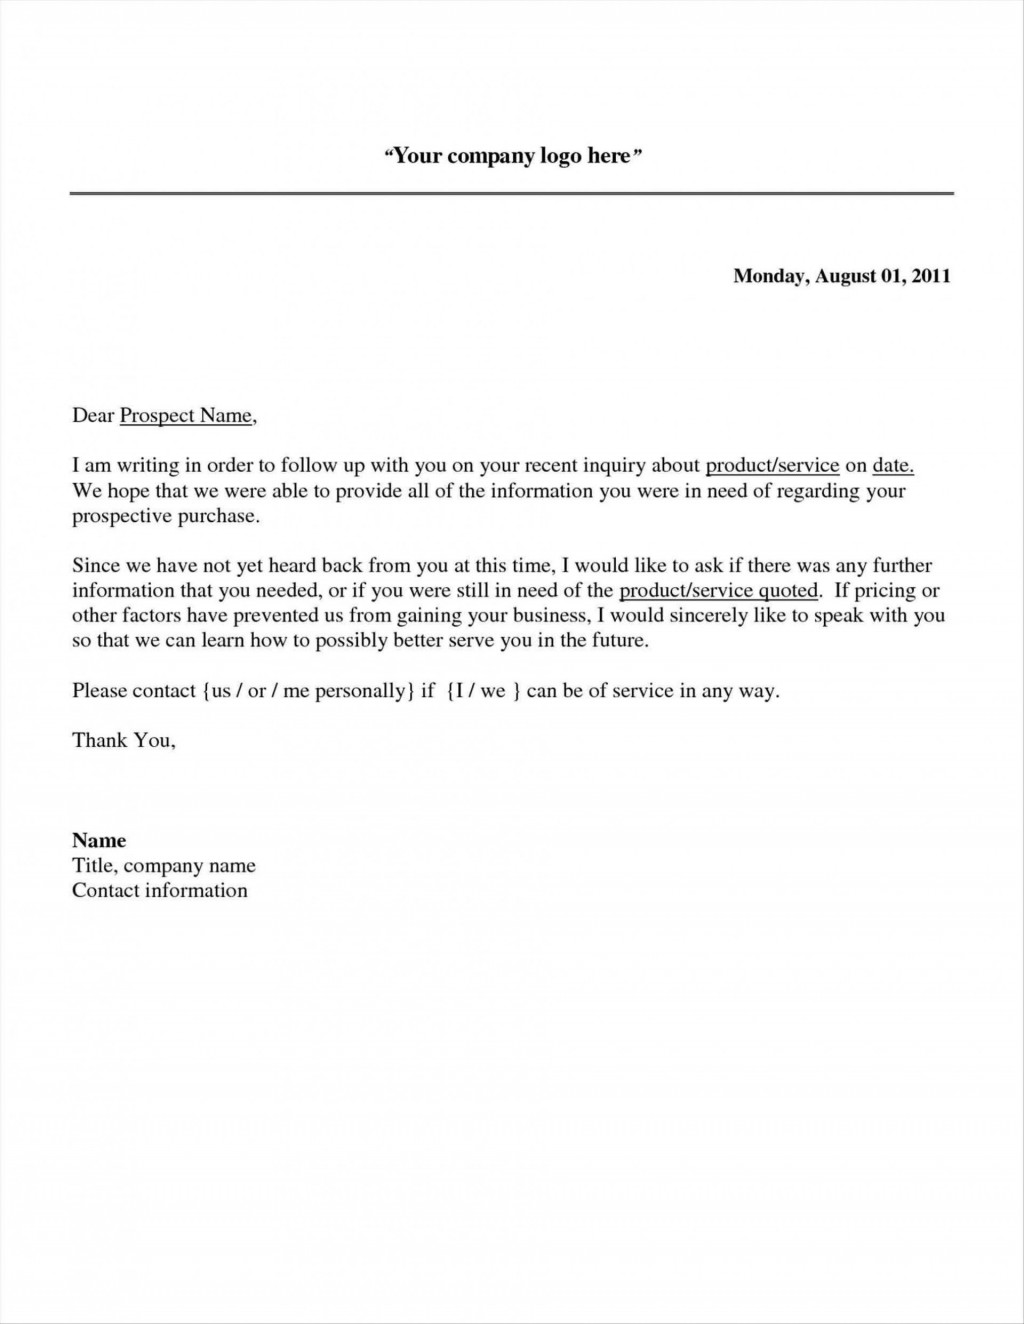 003 Frightening Follow Up Email Template After No Response High Definition Large